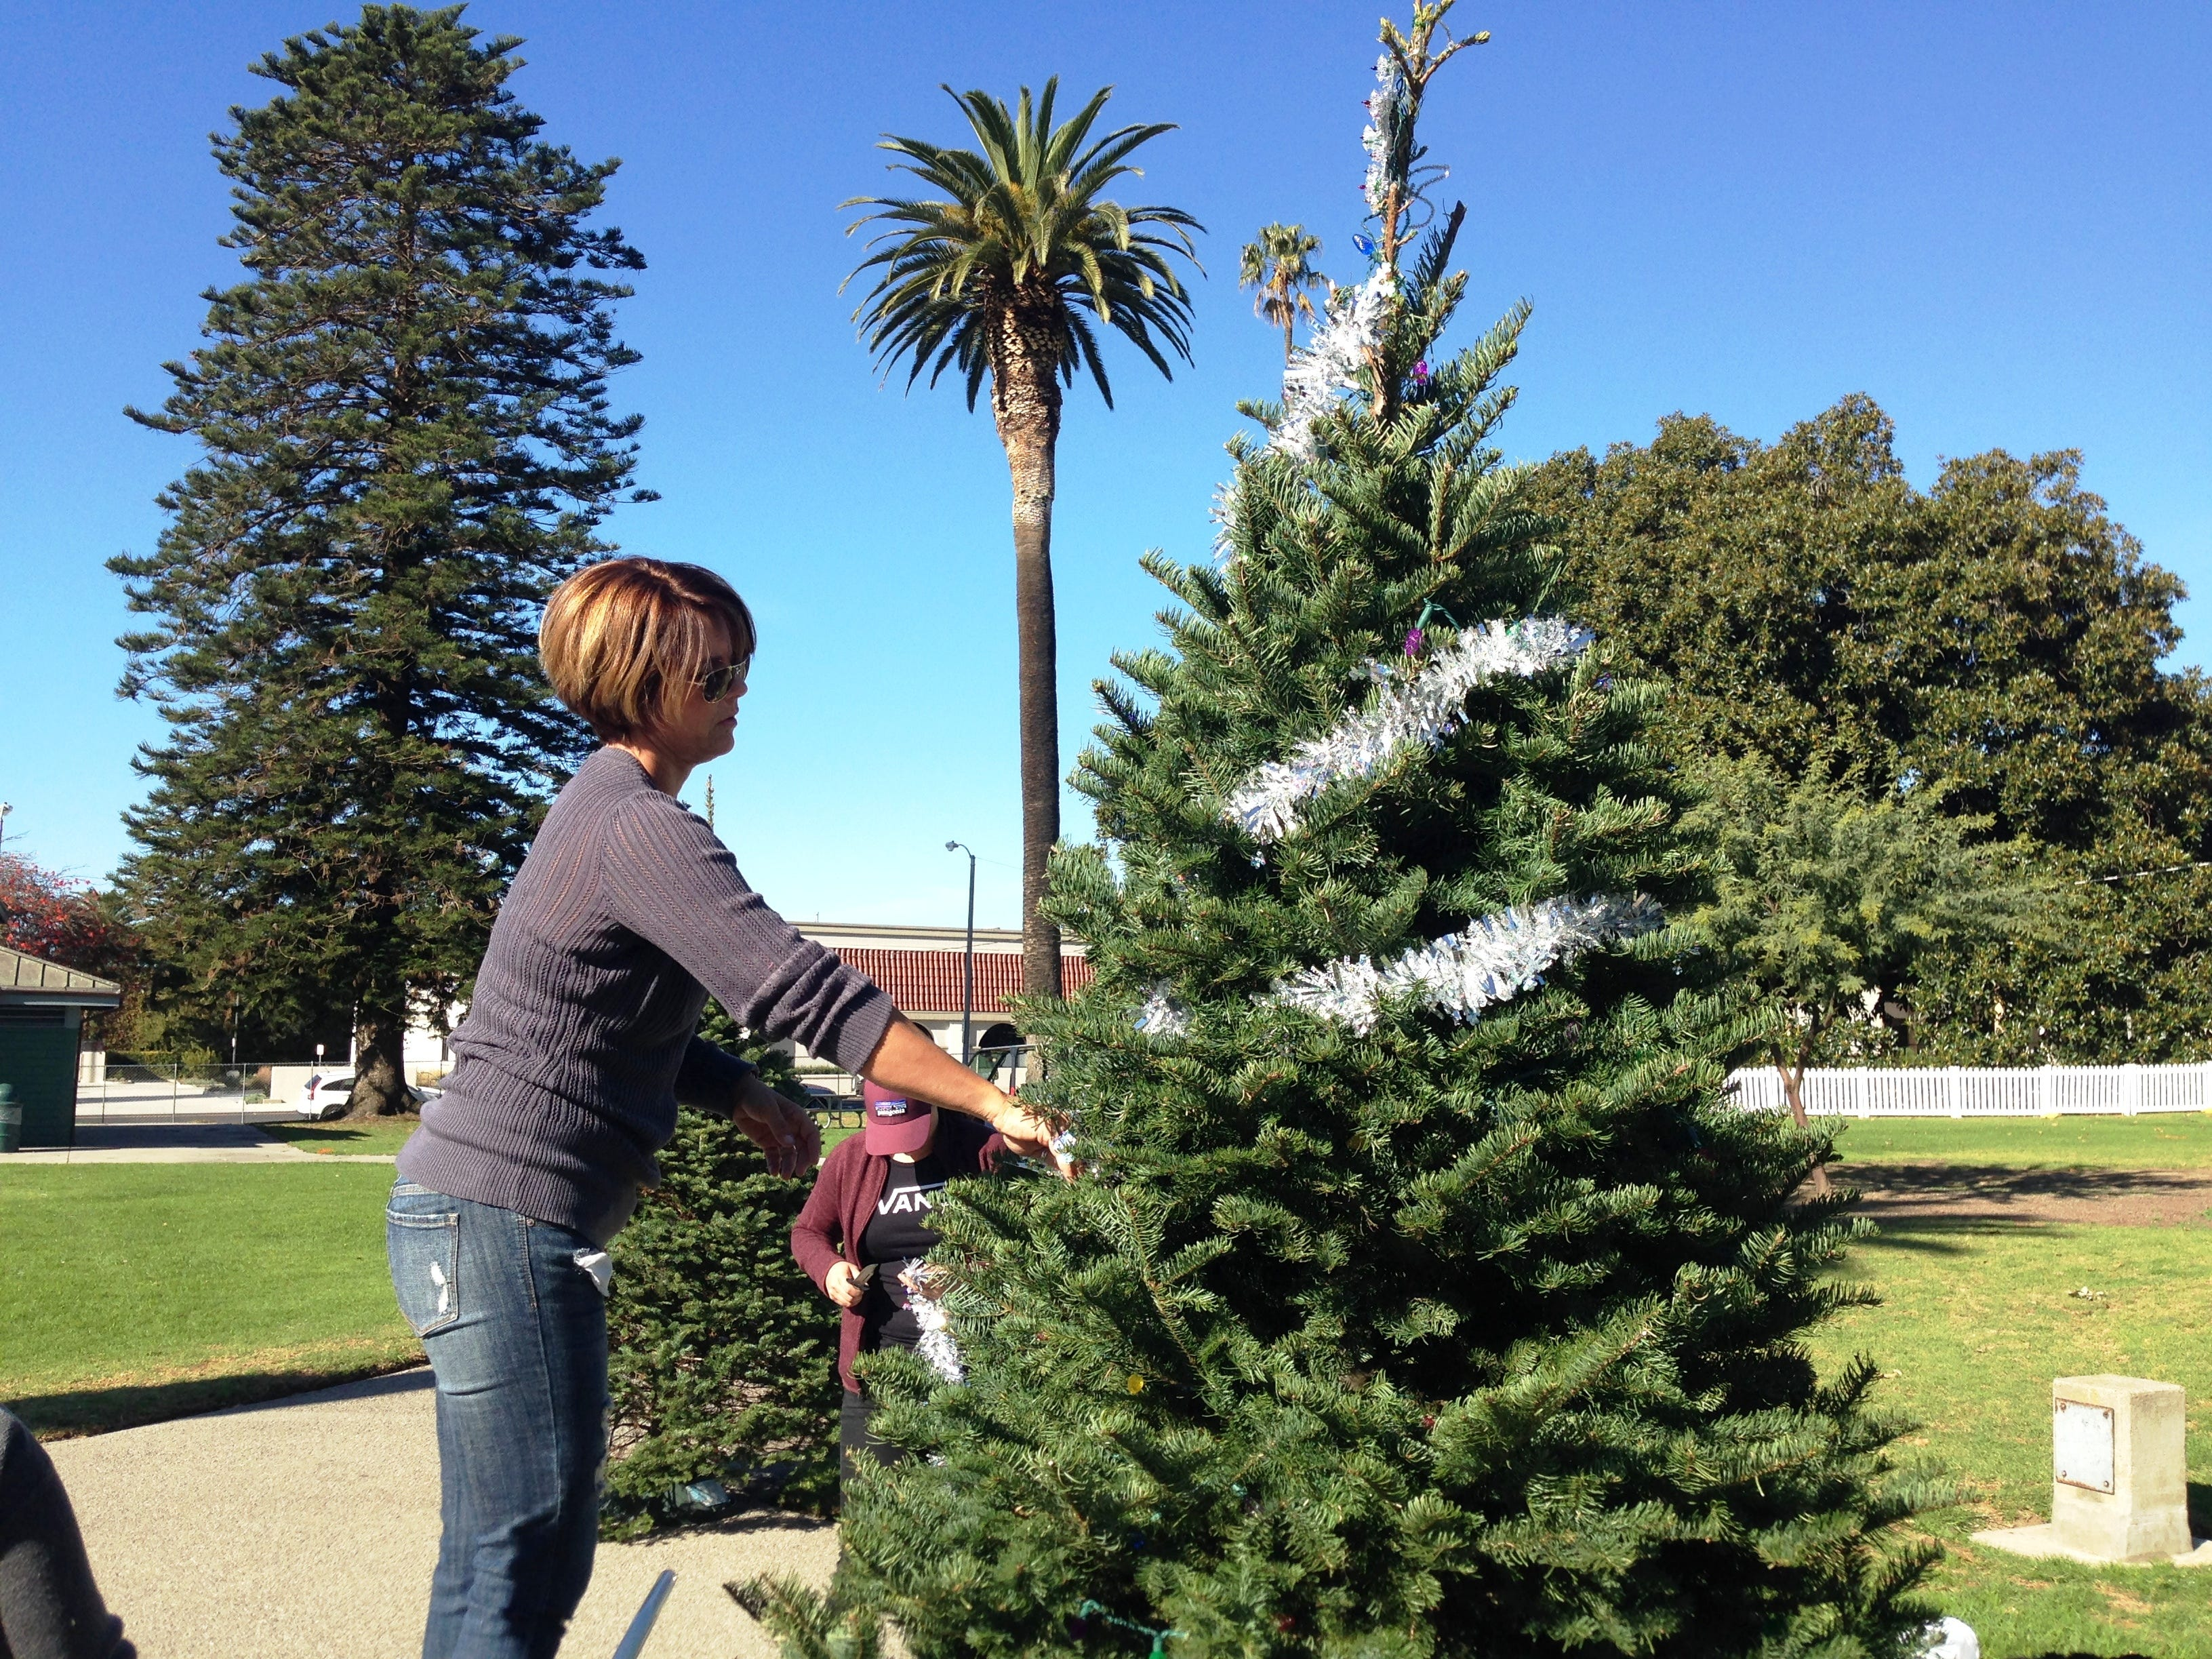 Diana Shillington decorates a Christmas tree sponsored by Las Posas Children's Center for Holidays at the Plaza, an event at Plaza Park in Ventura running Dec. 7 through Jan. 2 at Plaza Park in Ventura. The event showcases more than 100 elaborately decorated trees, as well as several holiday-themed activities.